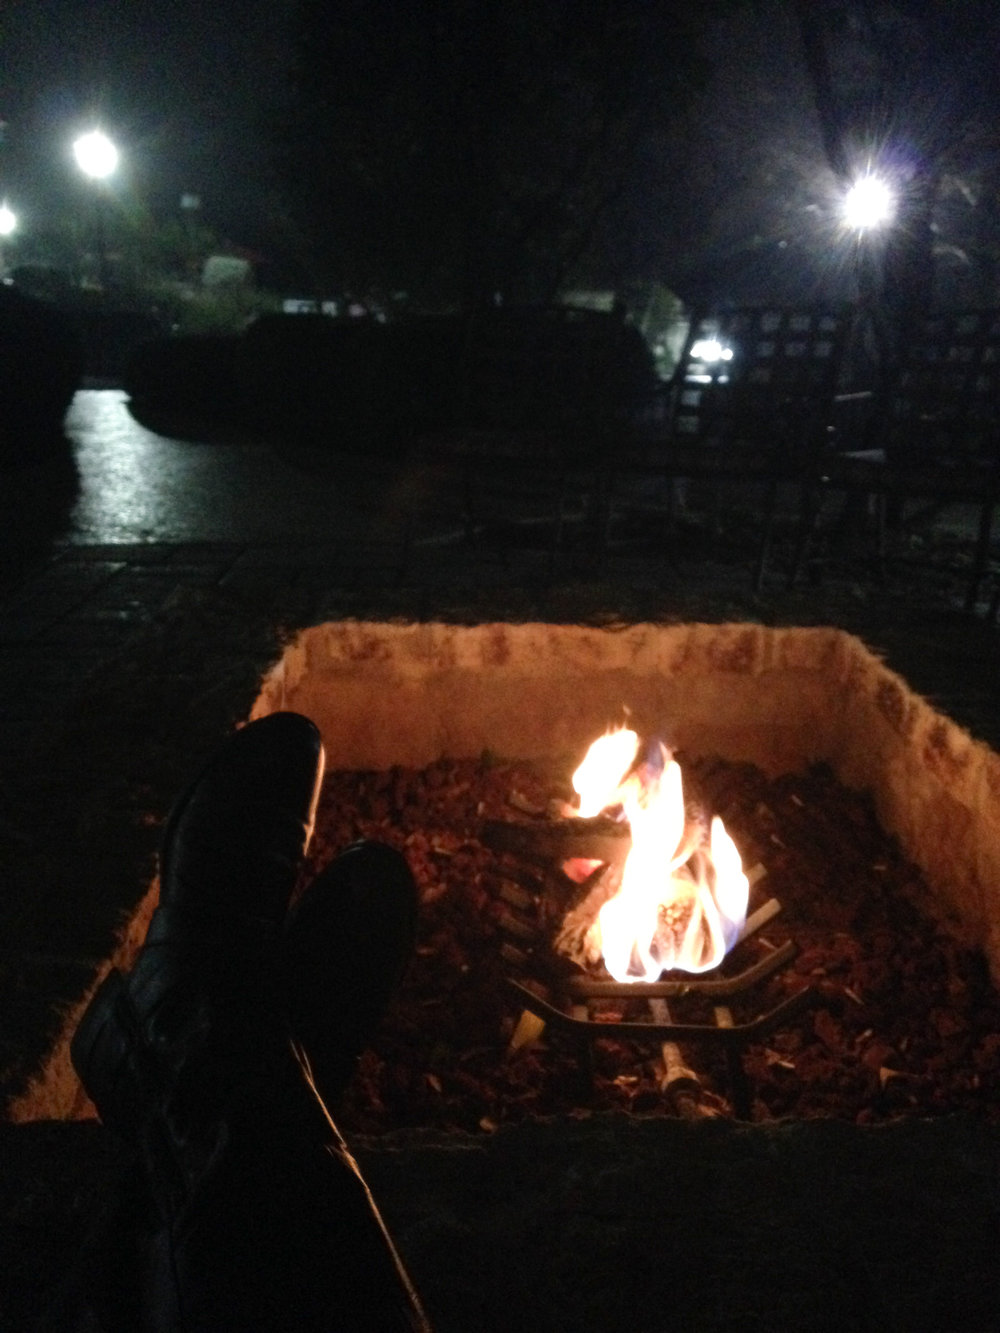 Day 35: Enjoyed a warm flame on a foggy night during a wedding reception